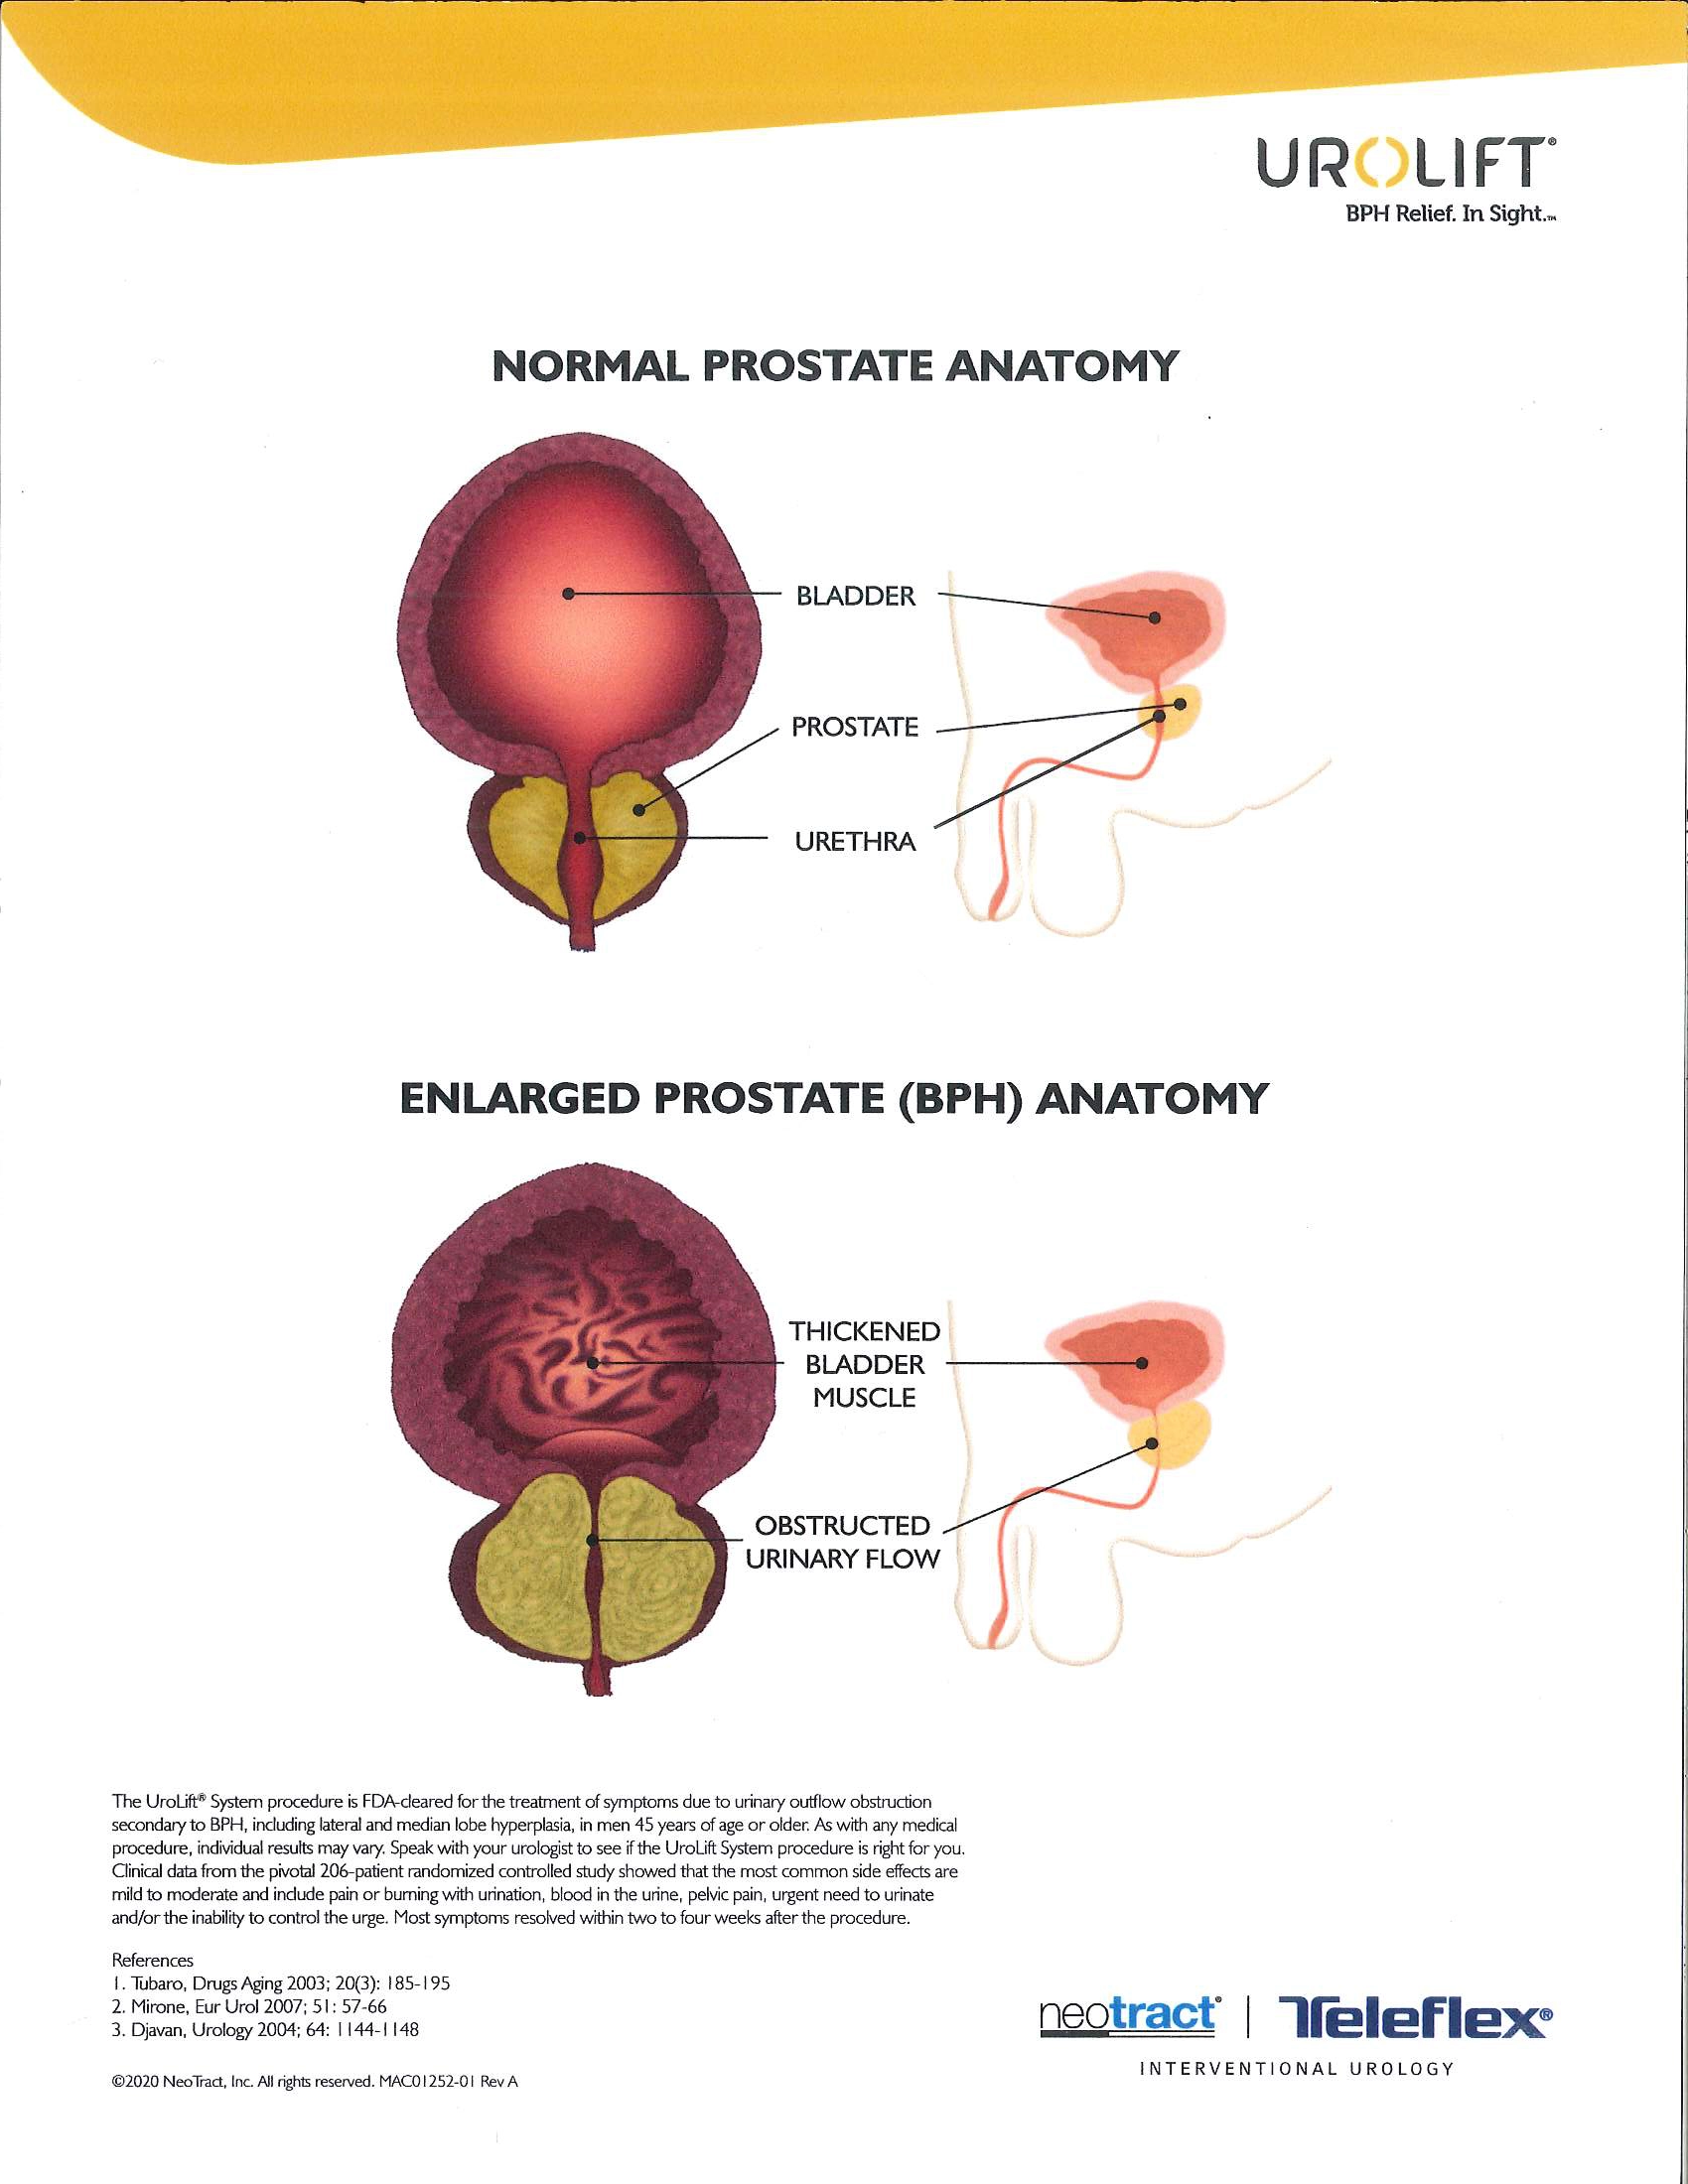 An Enlarged Prostate Causes Urinary Outflow Obstruction For Men